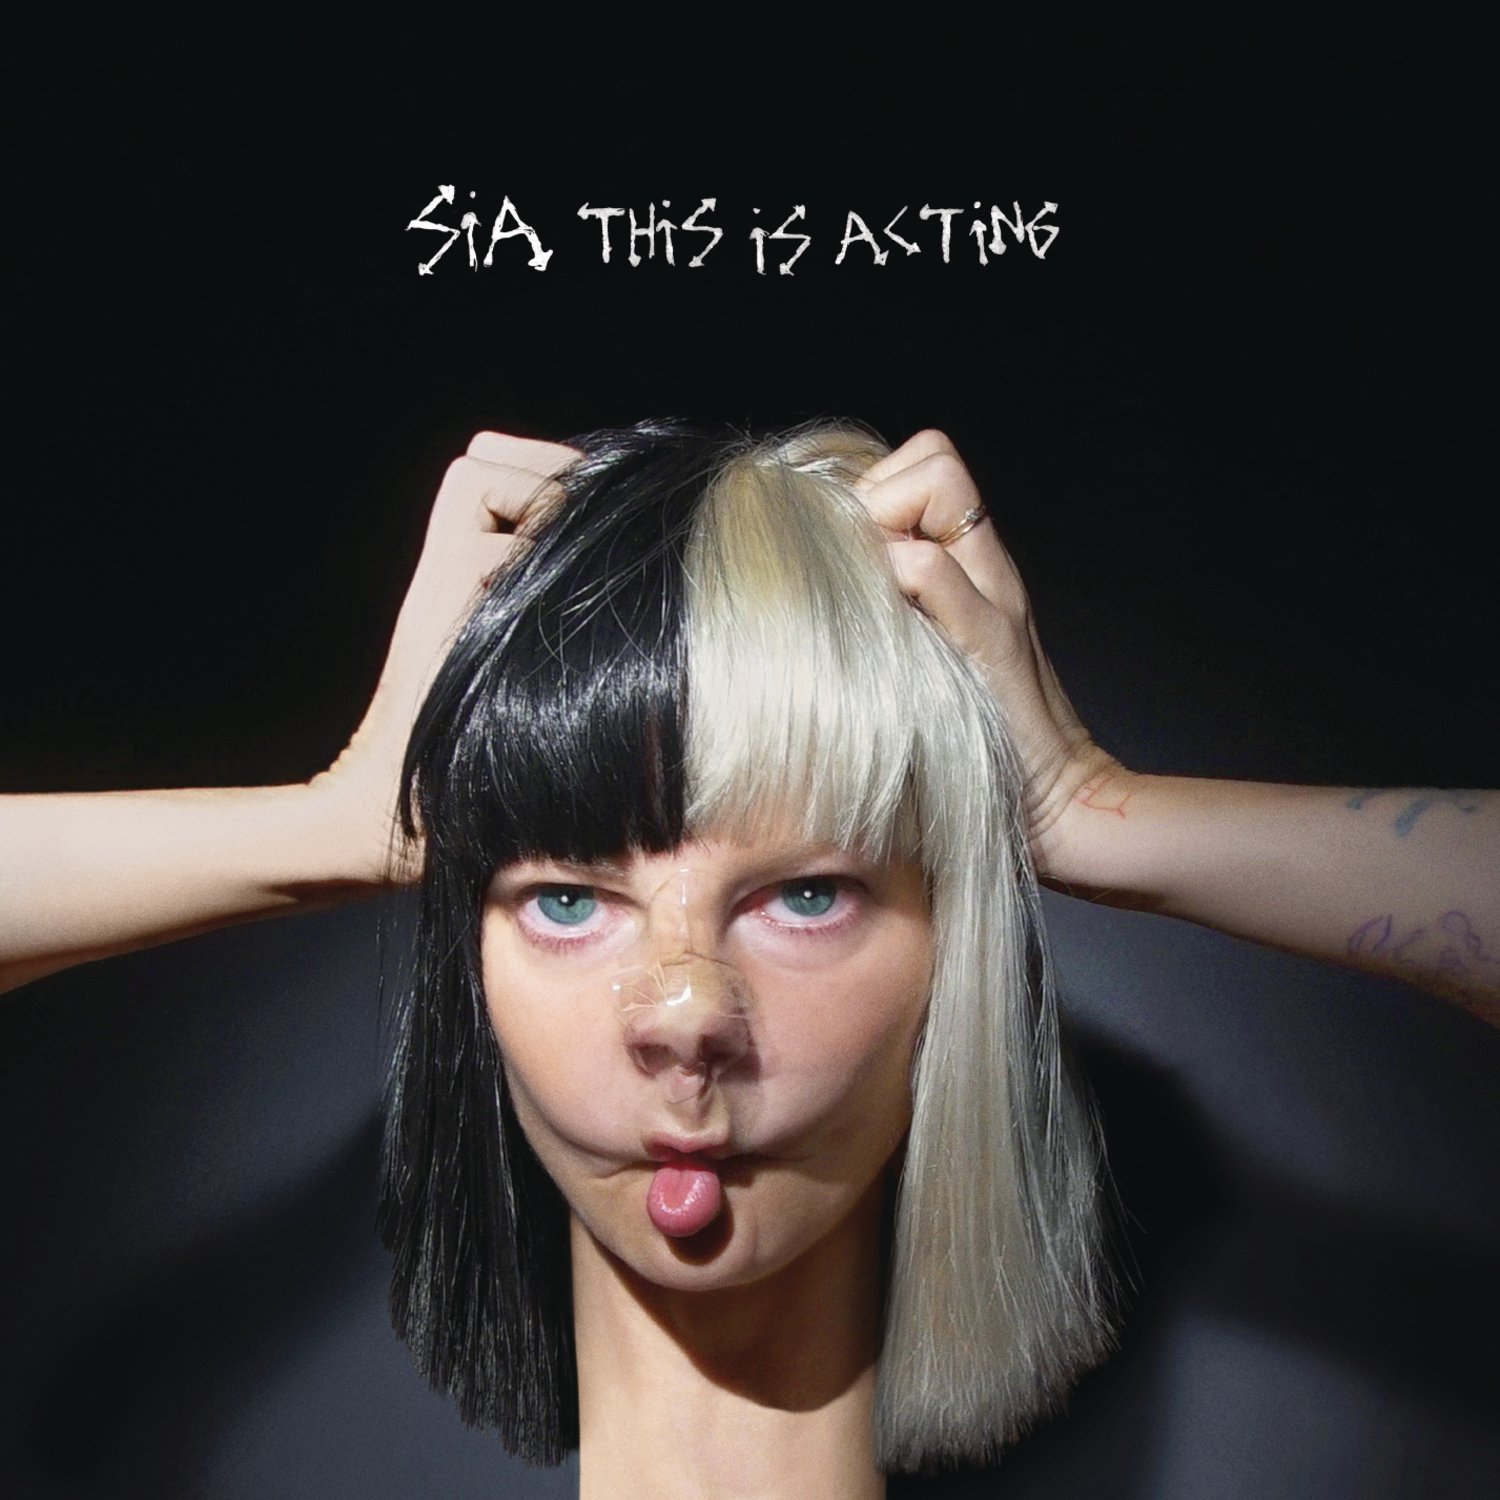 Hot 100 Jewels: Sia and Those 'Cheap Thrills' the 'One' to Beat